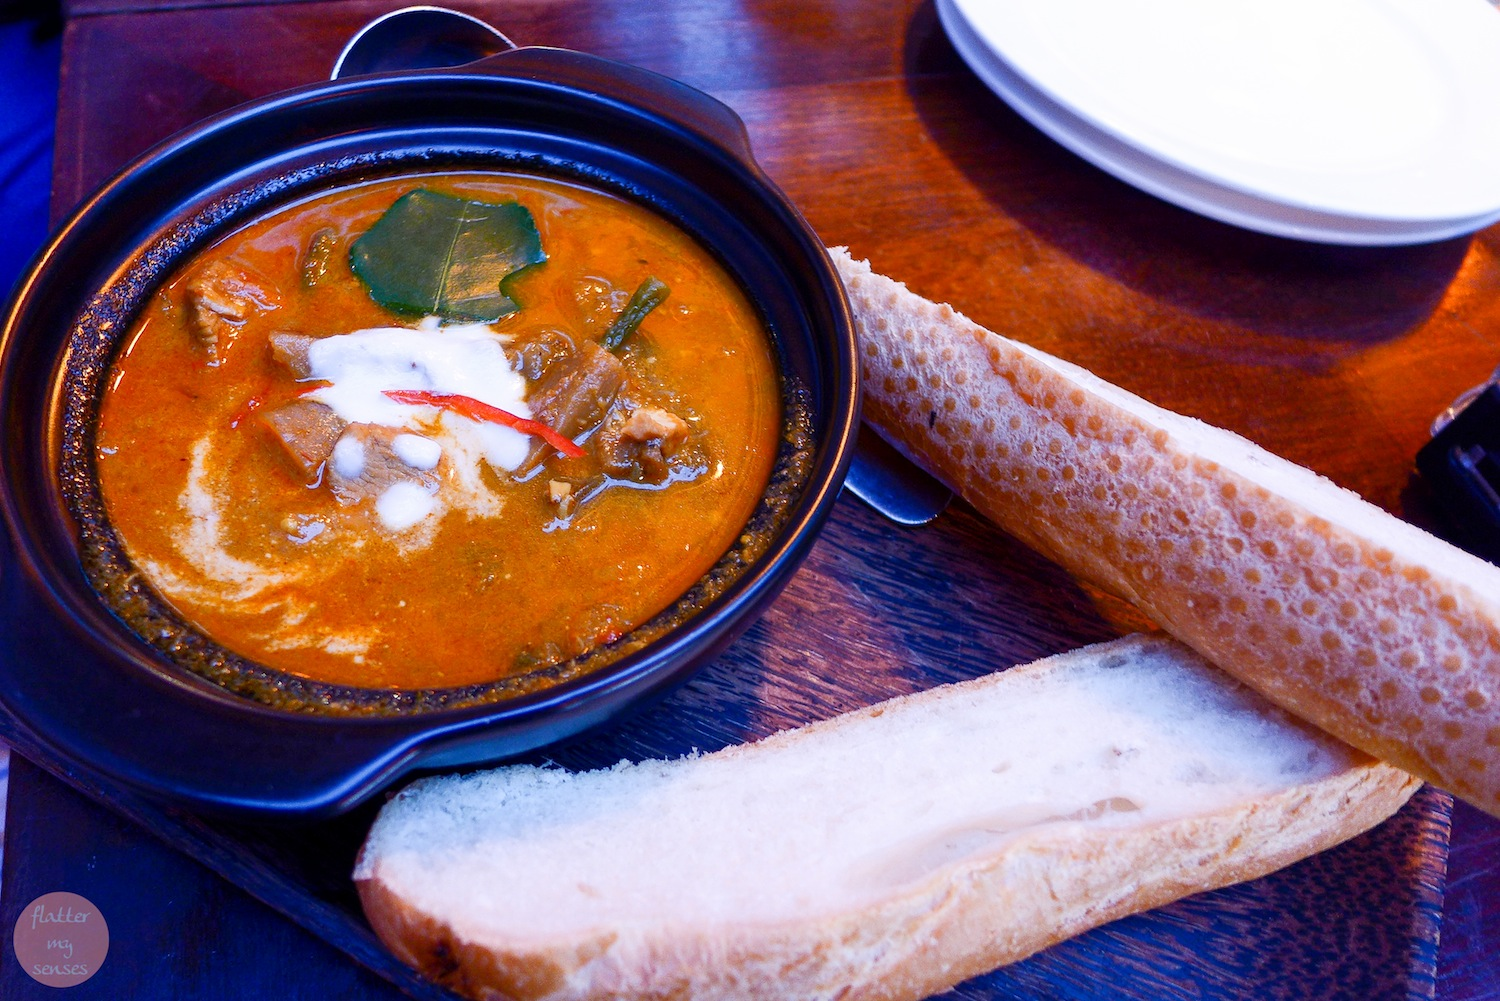 Romdeng's Famous Chicken and Vegetable Curry served with Baguette ($6.50)